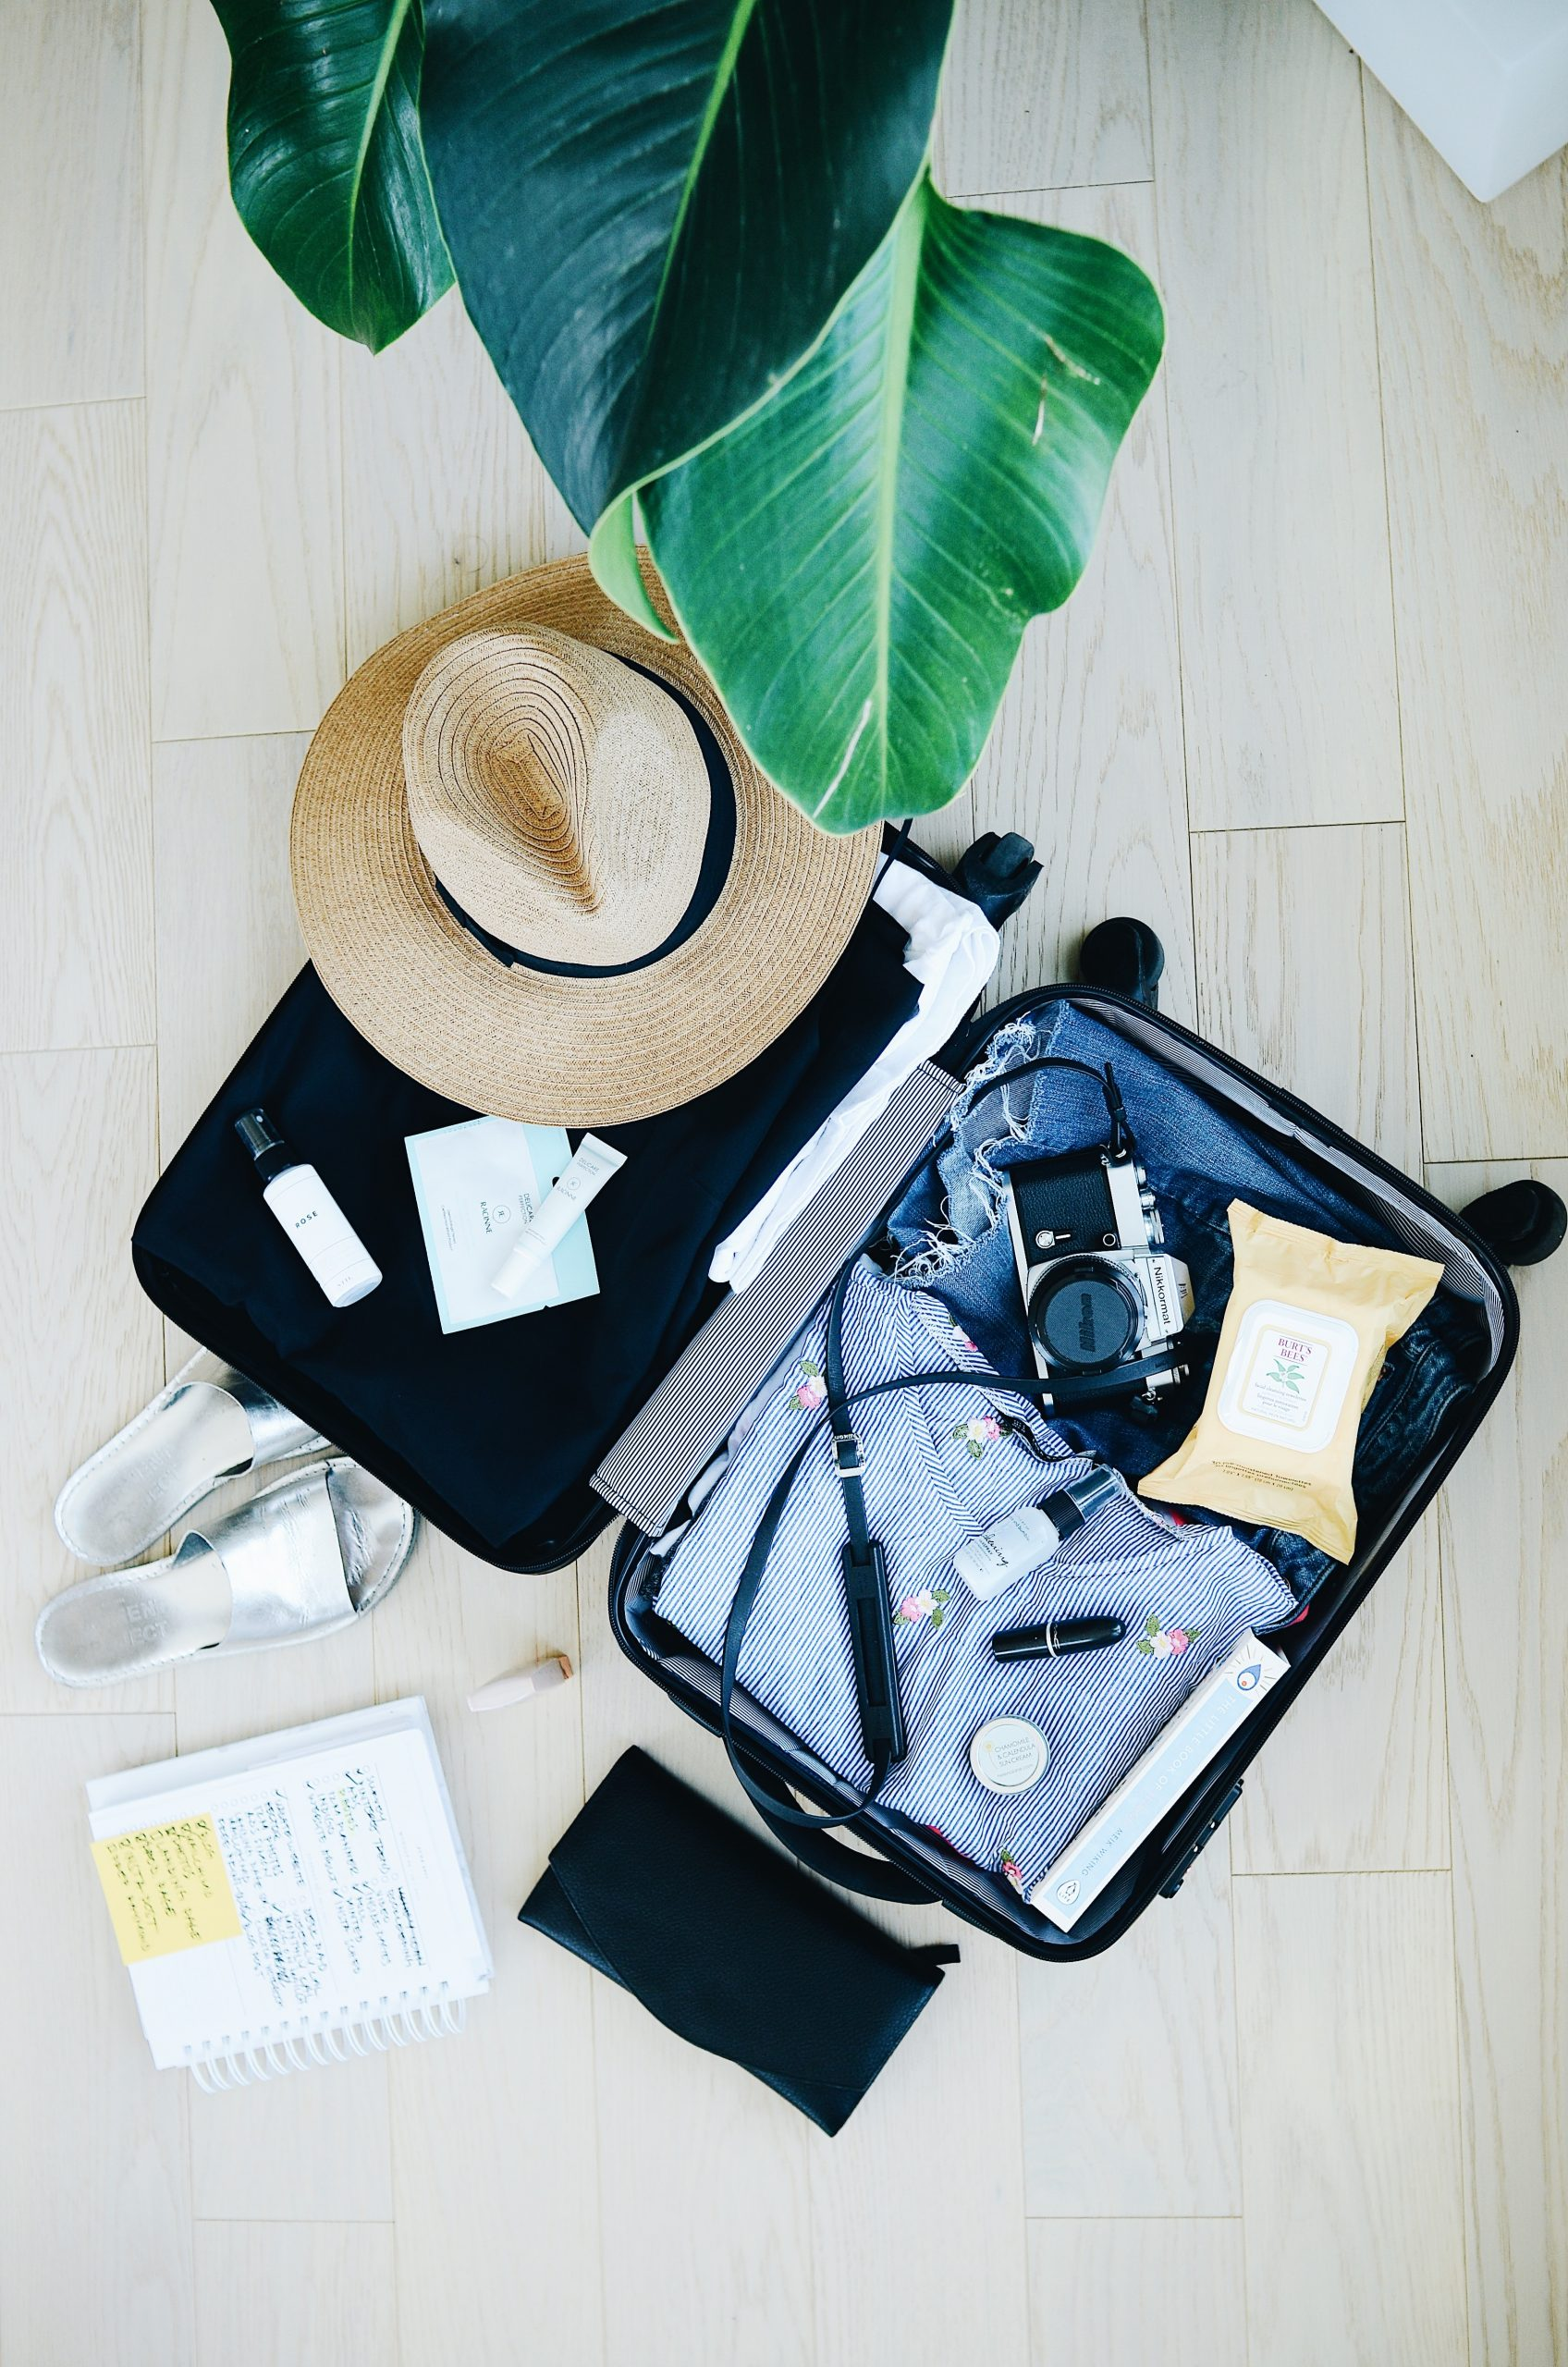 Traveling Light: Traveling with CBD